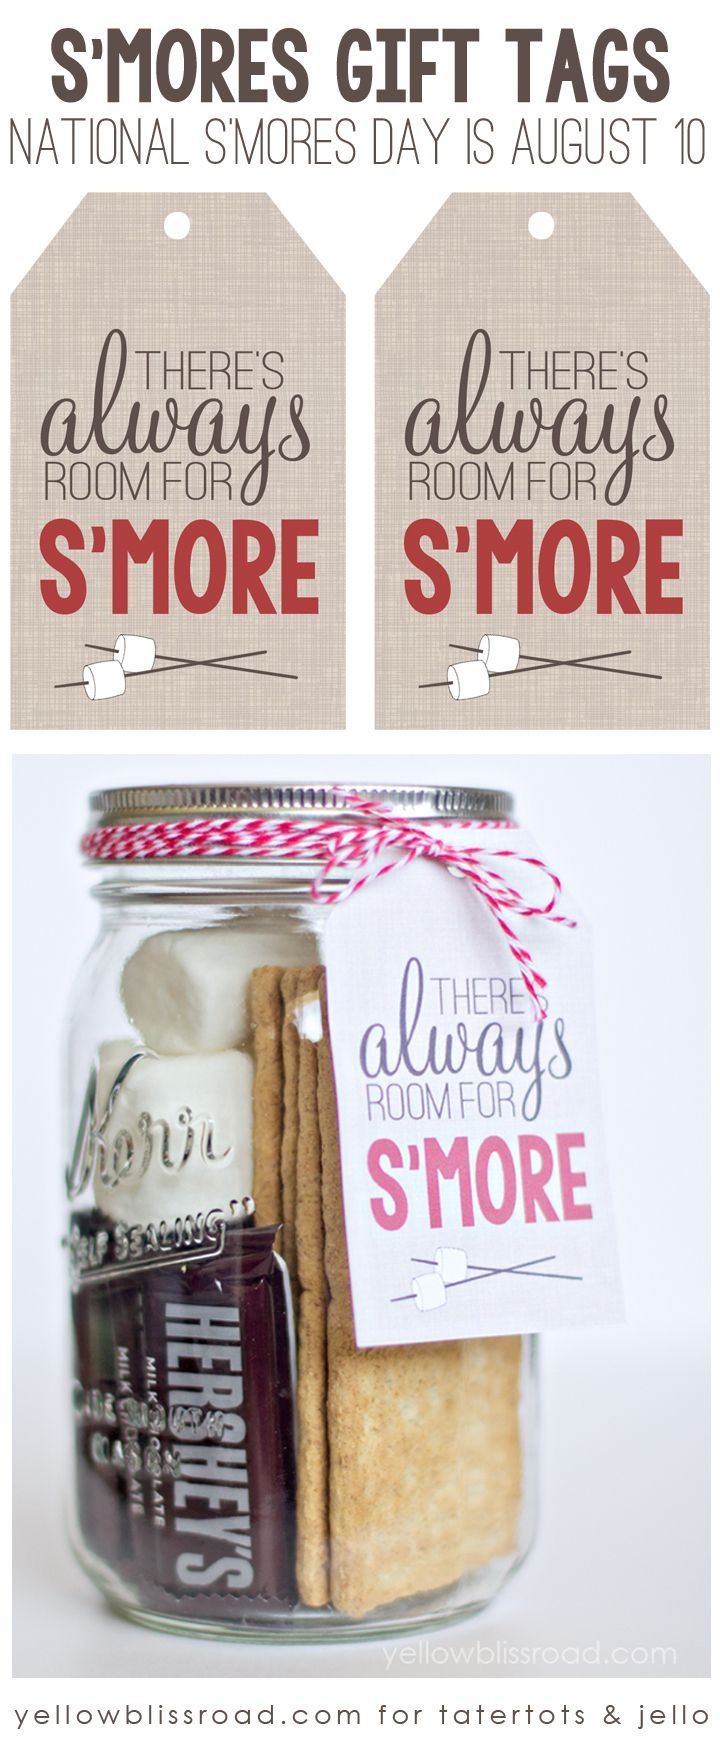 Free Printable S'mores Gift Tag   Sweets And Treats!   Food Gifts - Free Printable Mason Jar Gift Tags